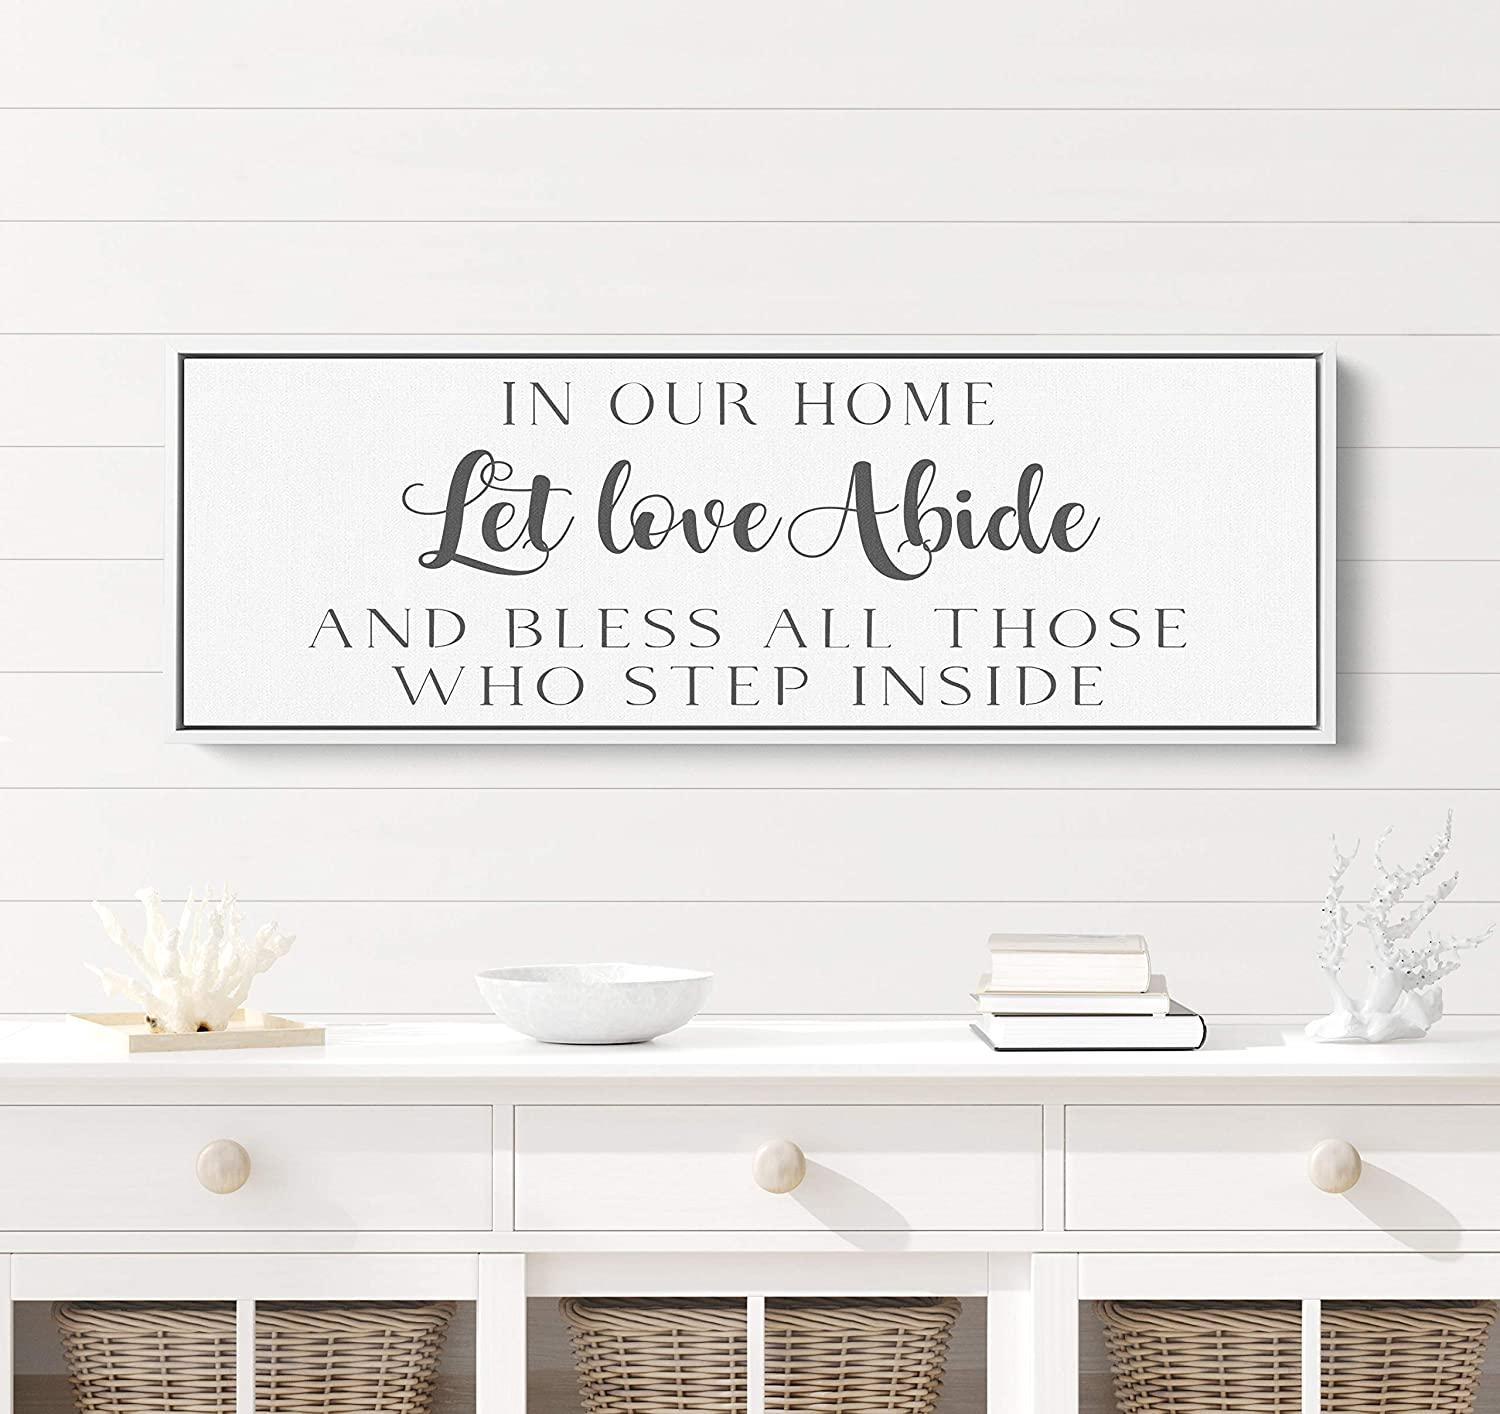 onepicebest Wood Signs for Home Decor, in Our Home Let Love Abide and Bless All Those Who Step Inside Sign, 6×20 Inch